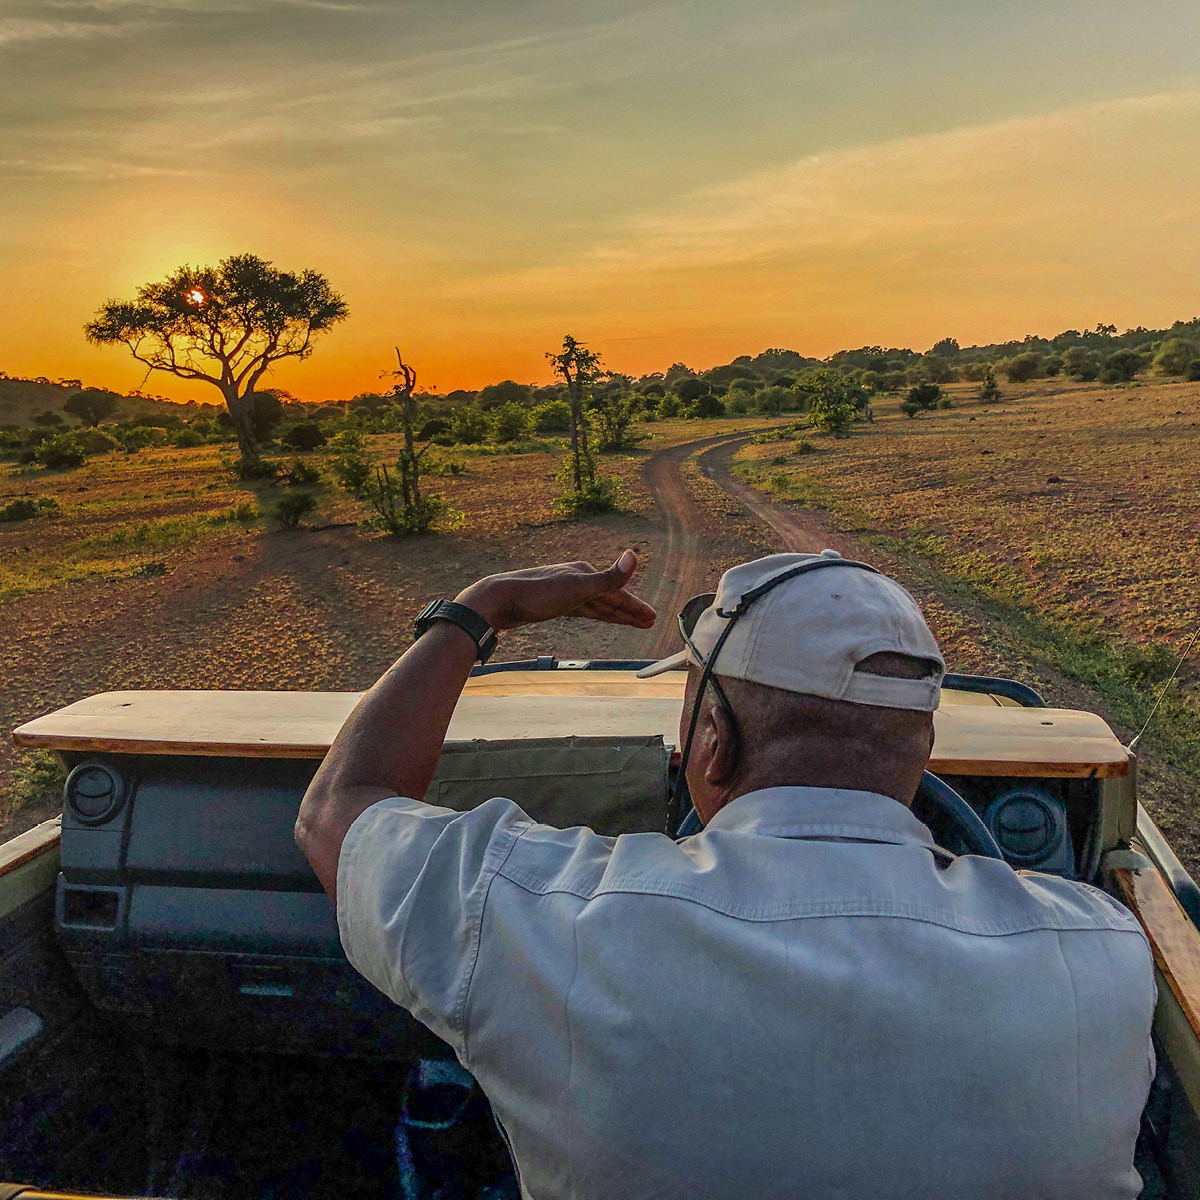 A photo of a man looking out over a nature scene in Botswana.